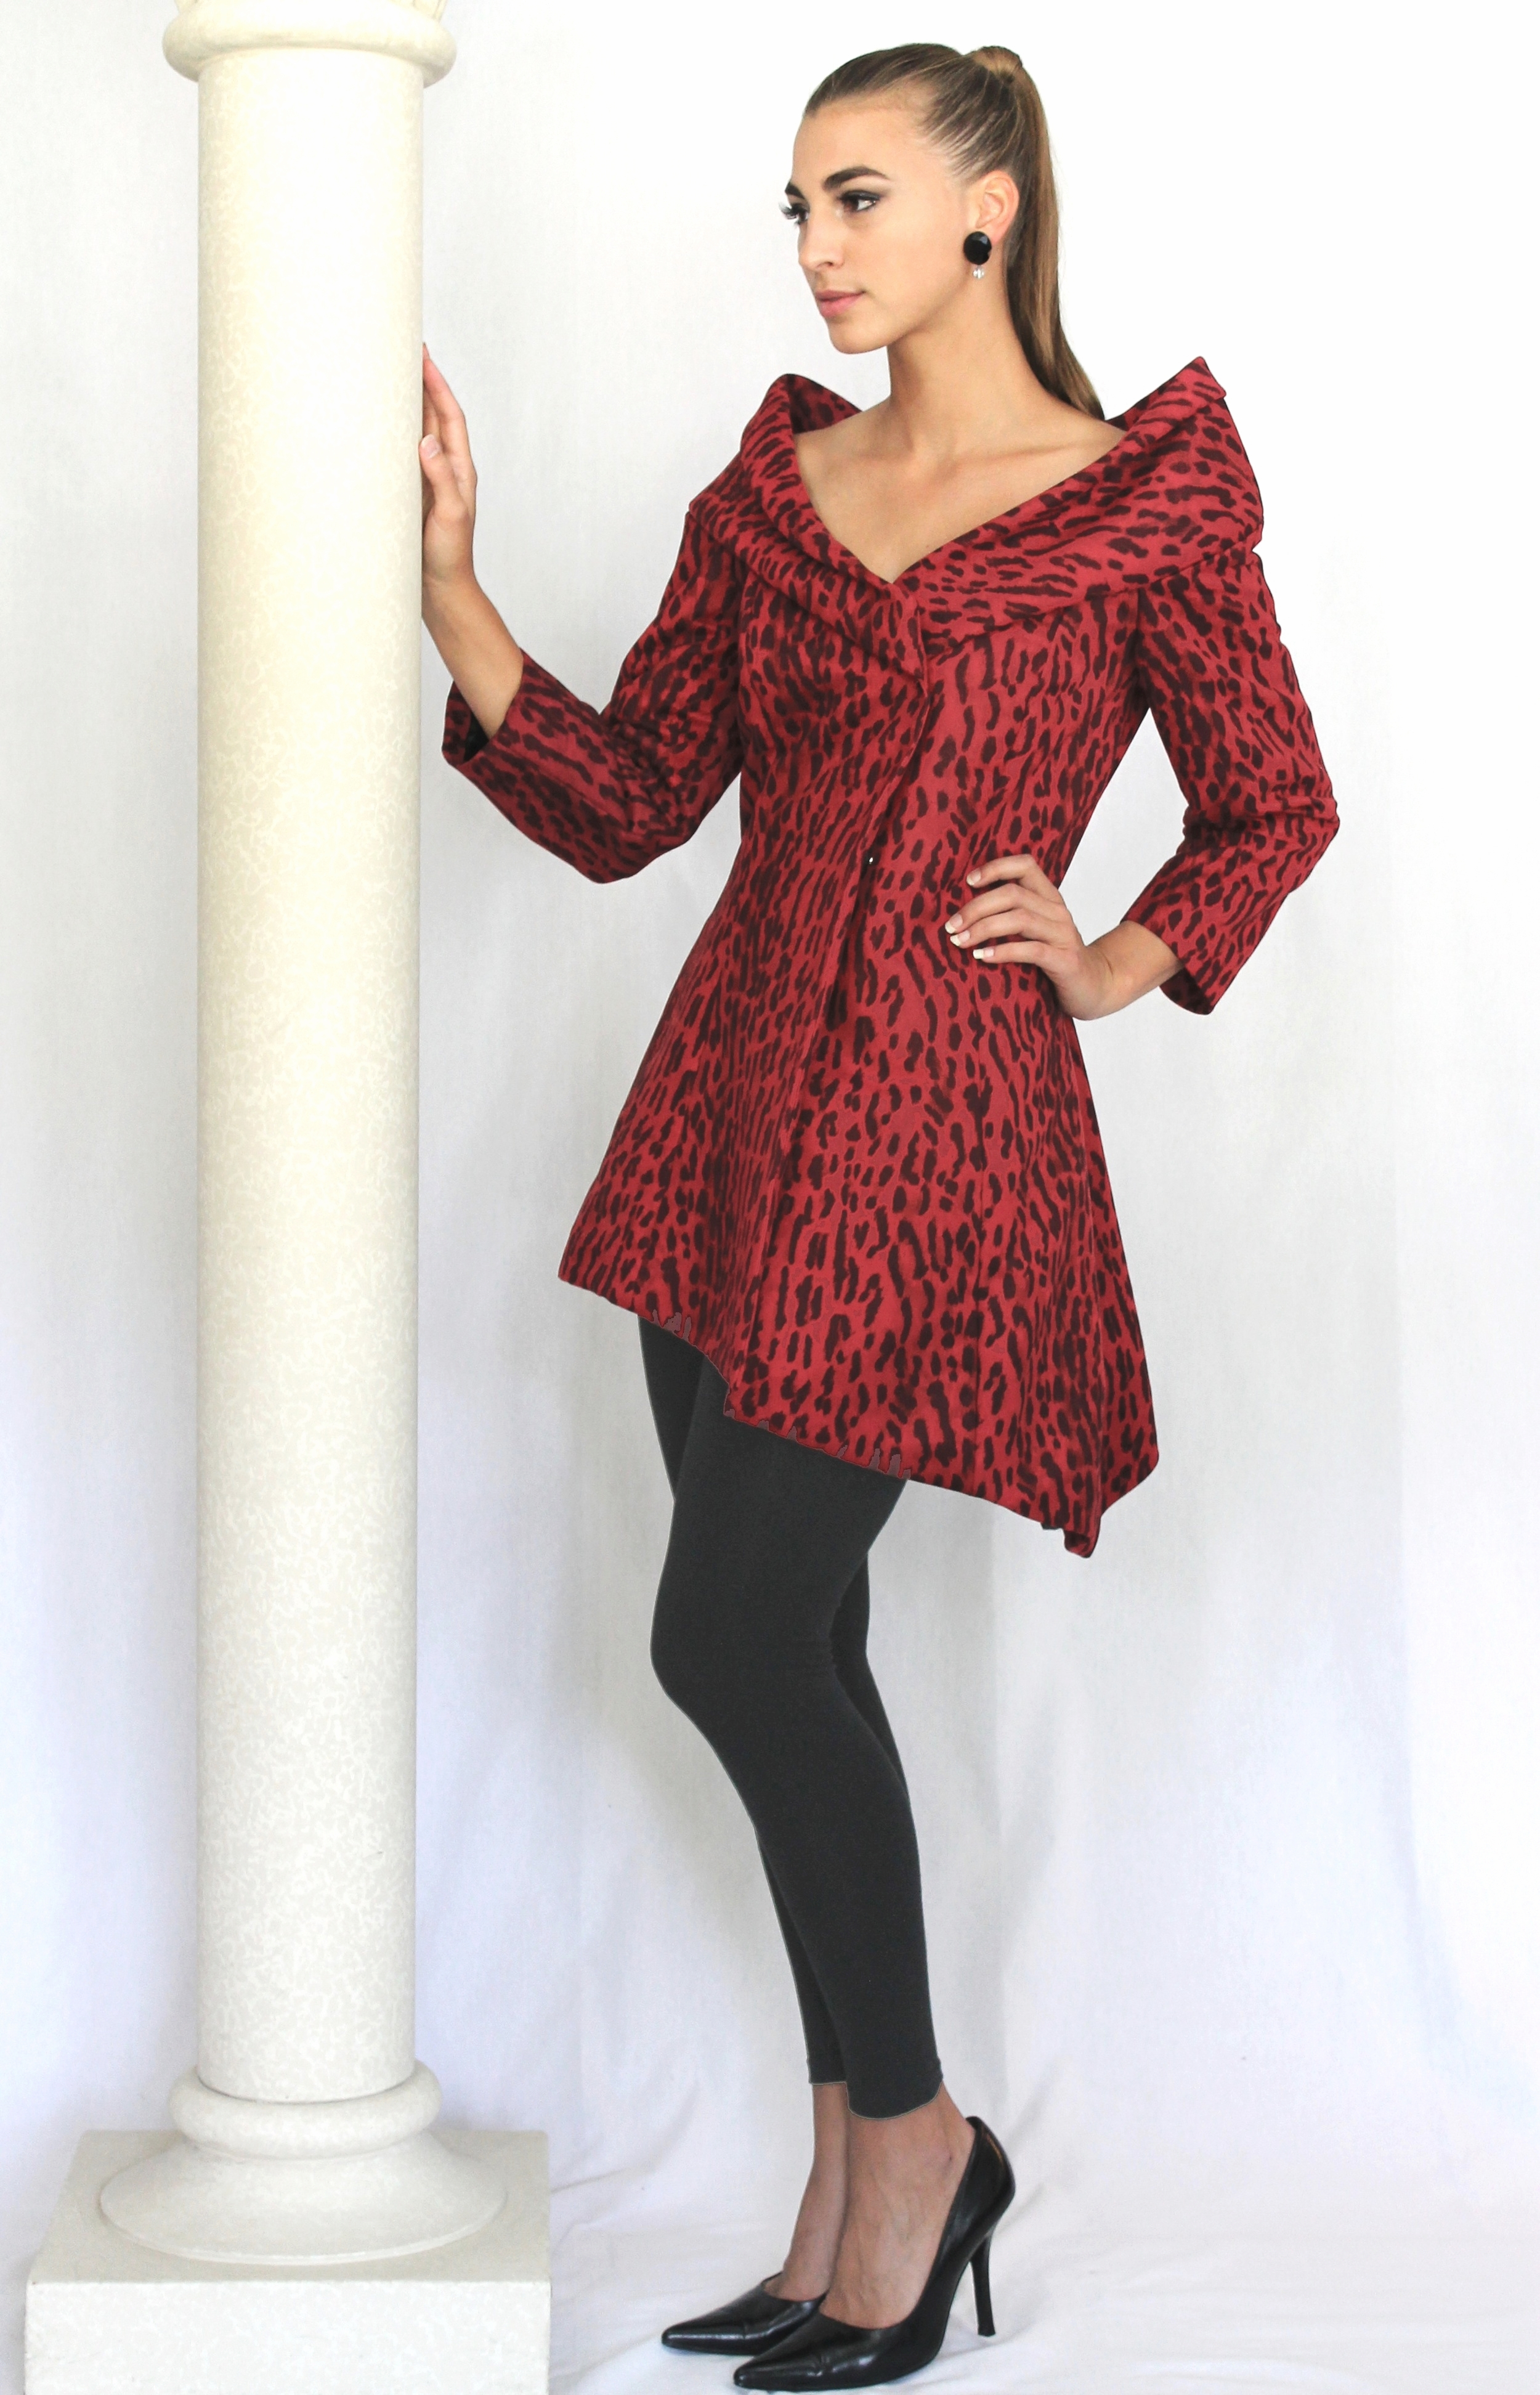 Terri Ives Daytime Couture